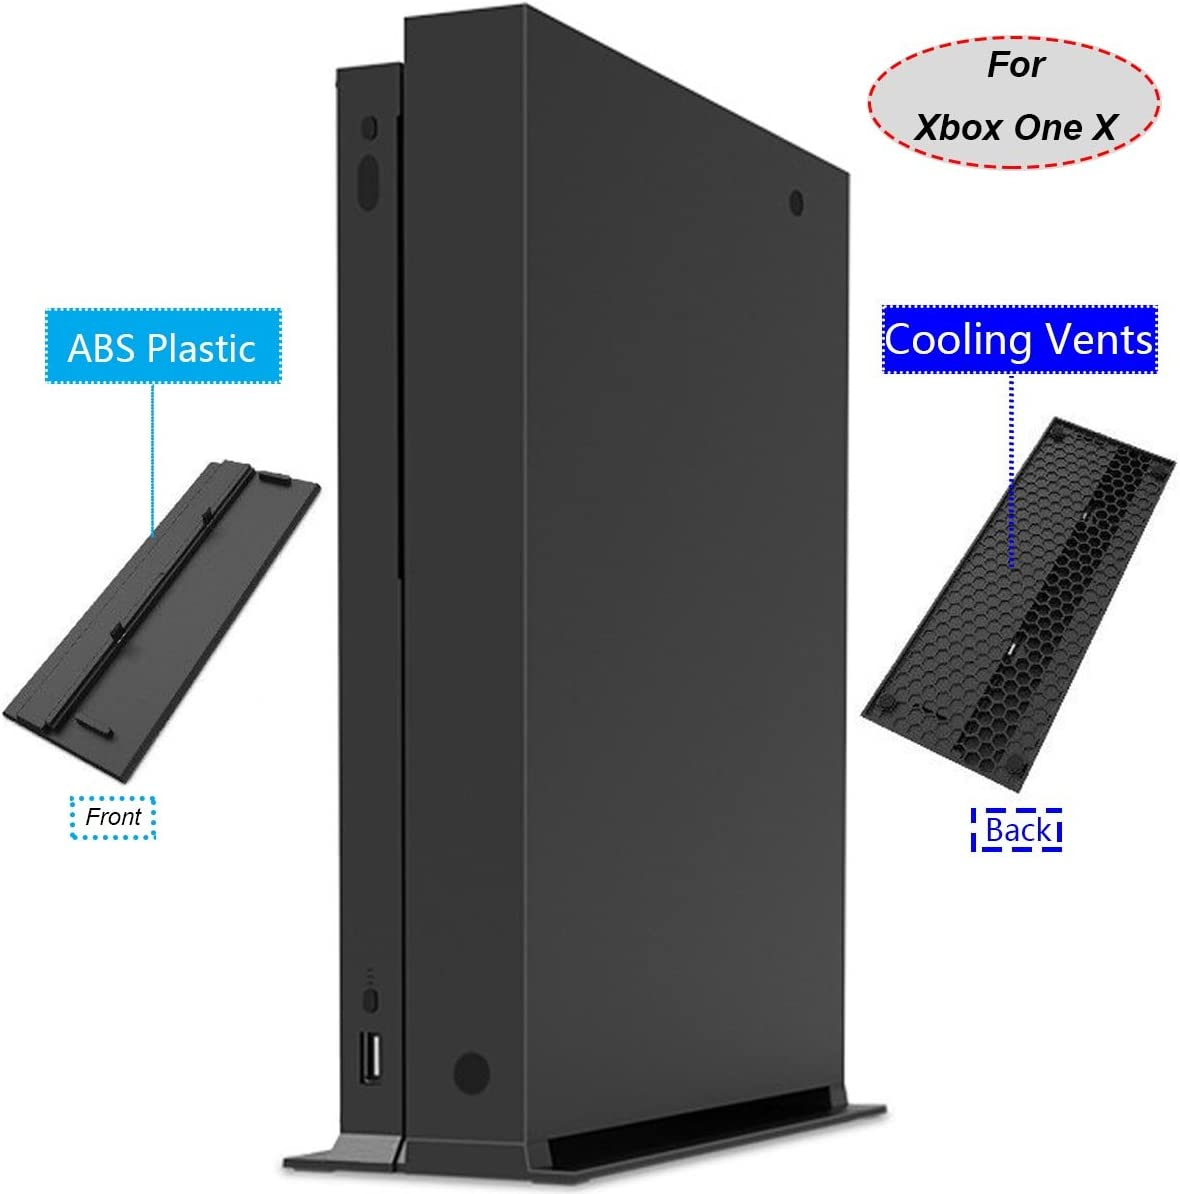 Whiteoak Vertical Stand for Xbox One X with Built-in Cooling Vents & 4X Non-Slip Rubber Pad(Cooling Vents)